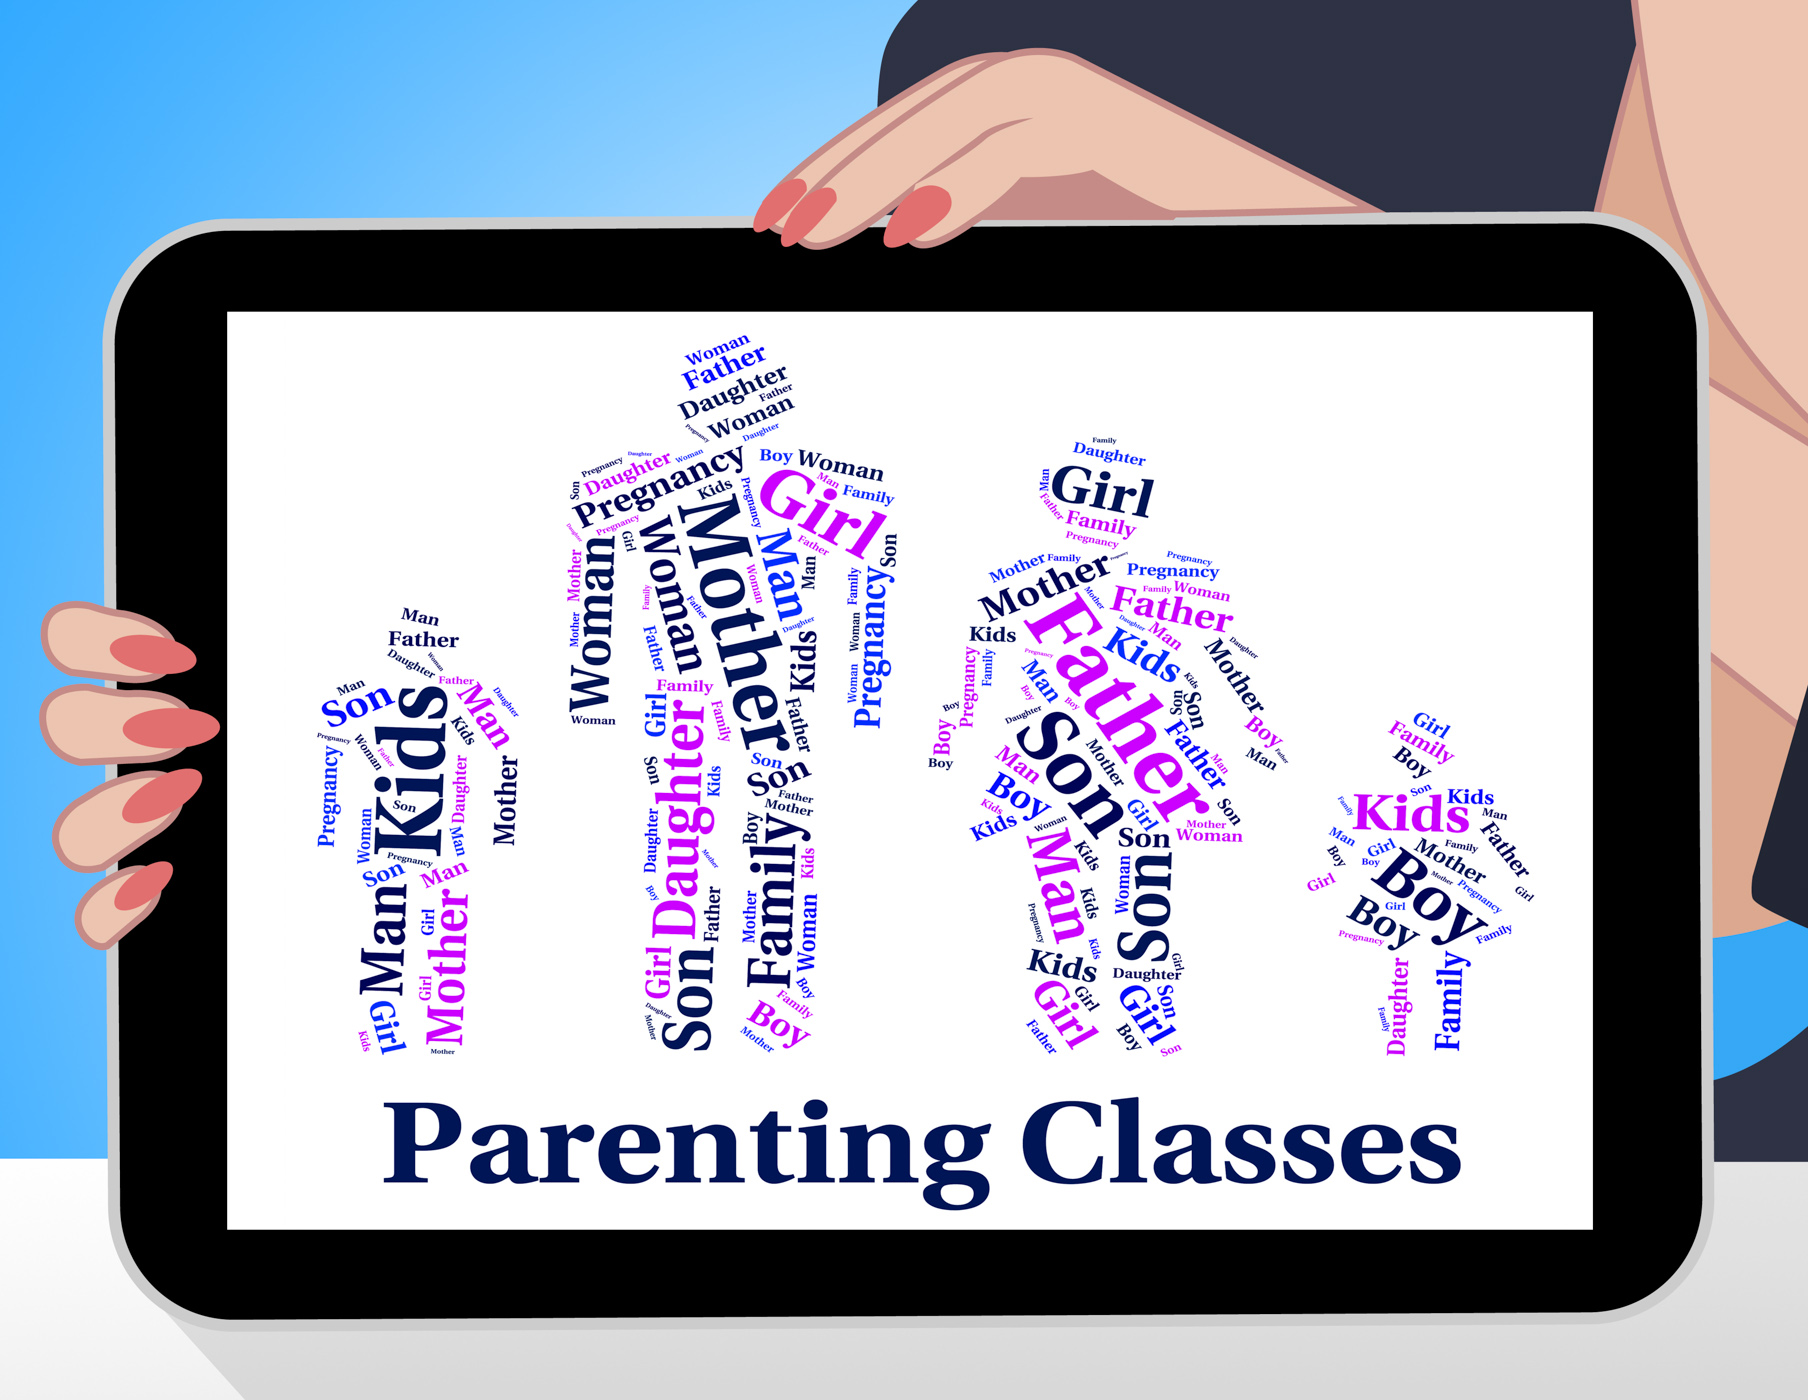 Parenting Classes Means Mother And Baby And Child, Child, Offspring, Wordcloud, Word, HQ Photo